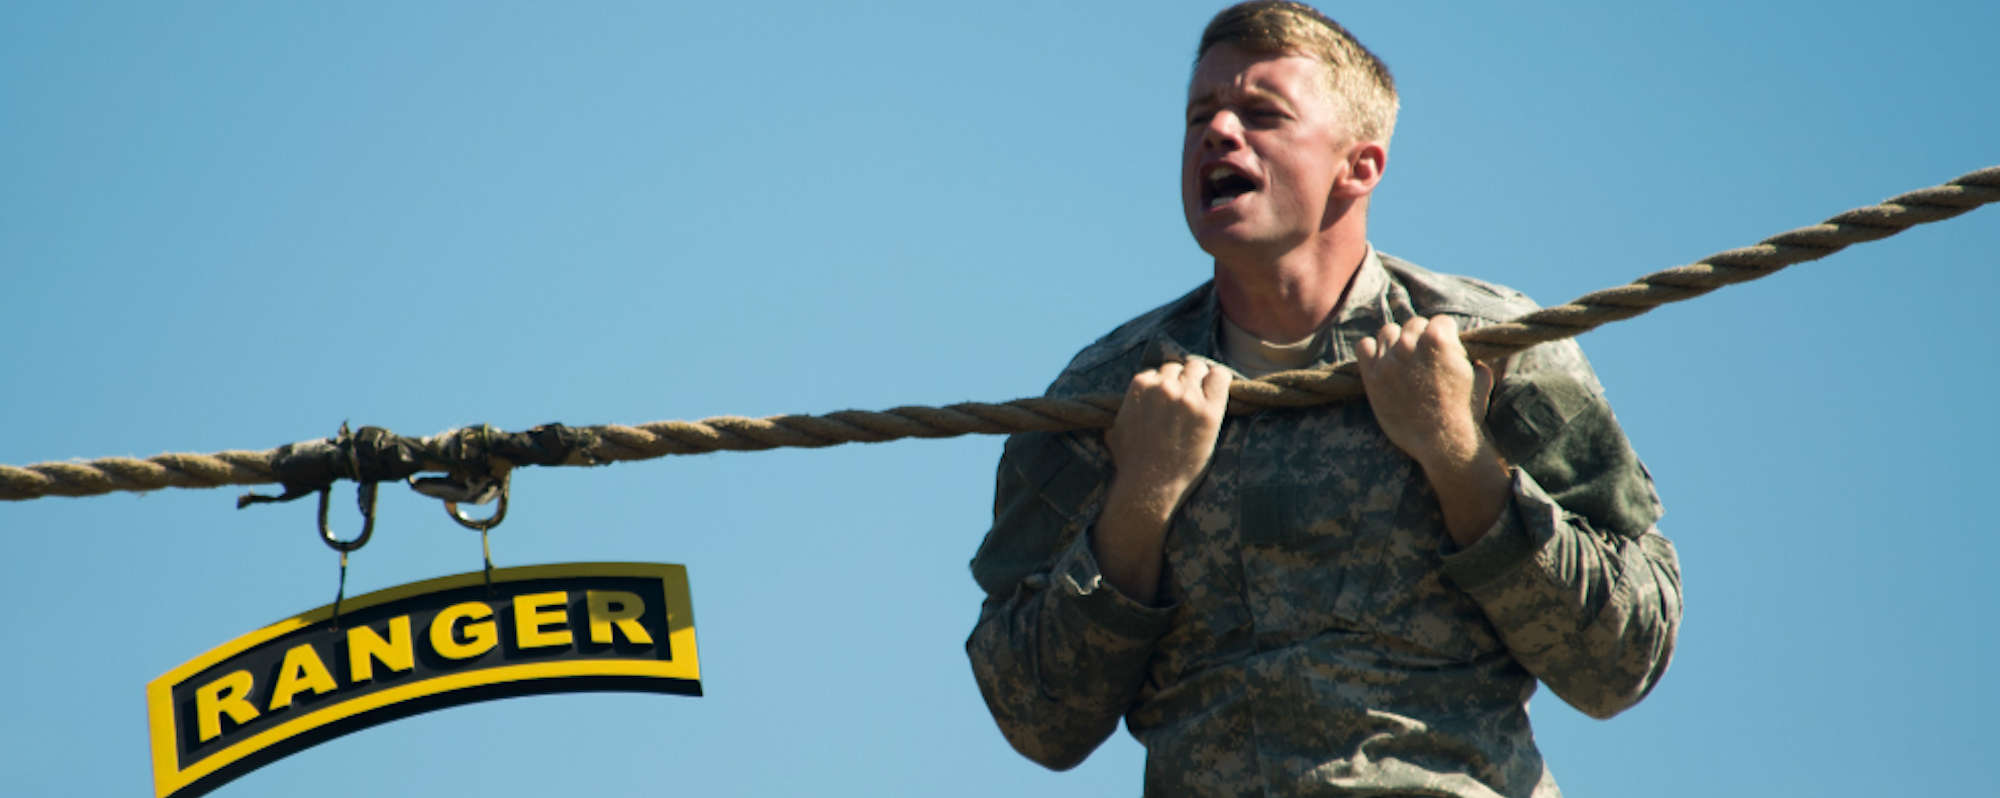 passing-ranger-school---training-edited-